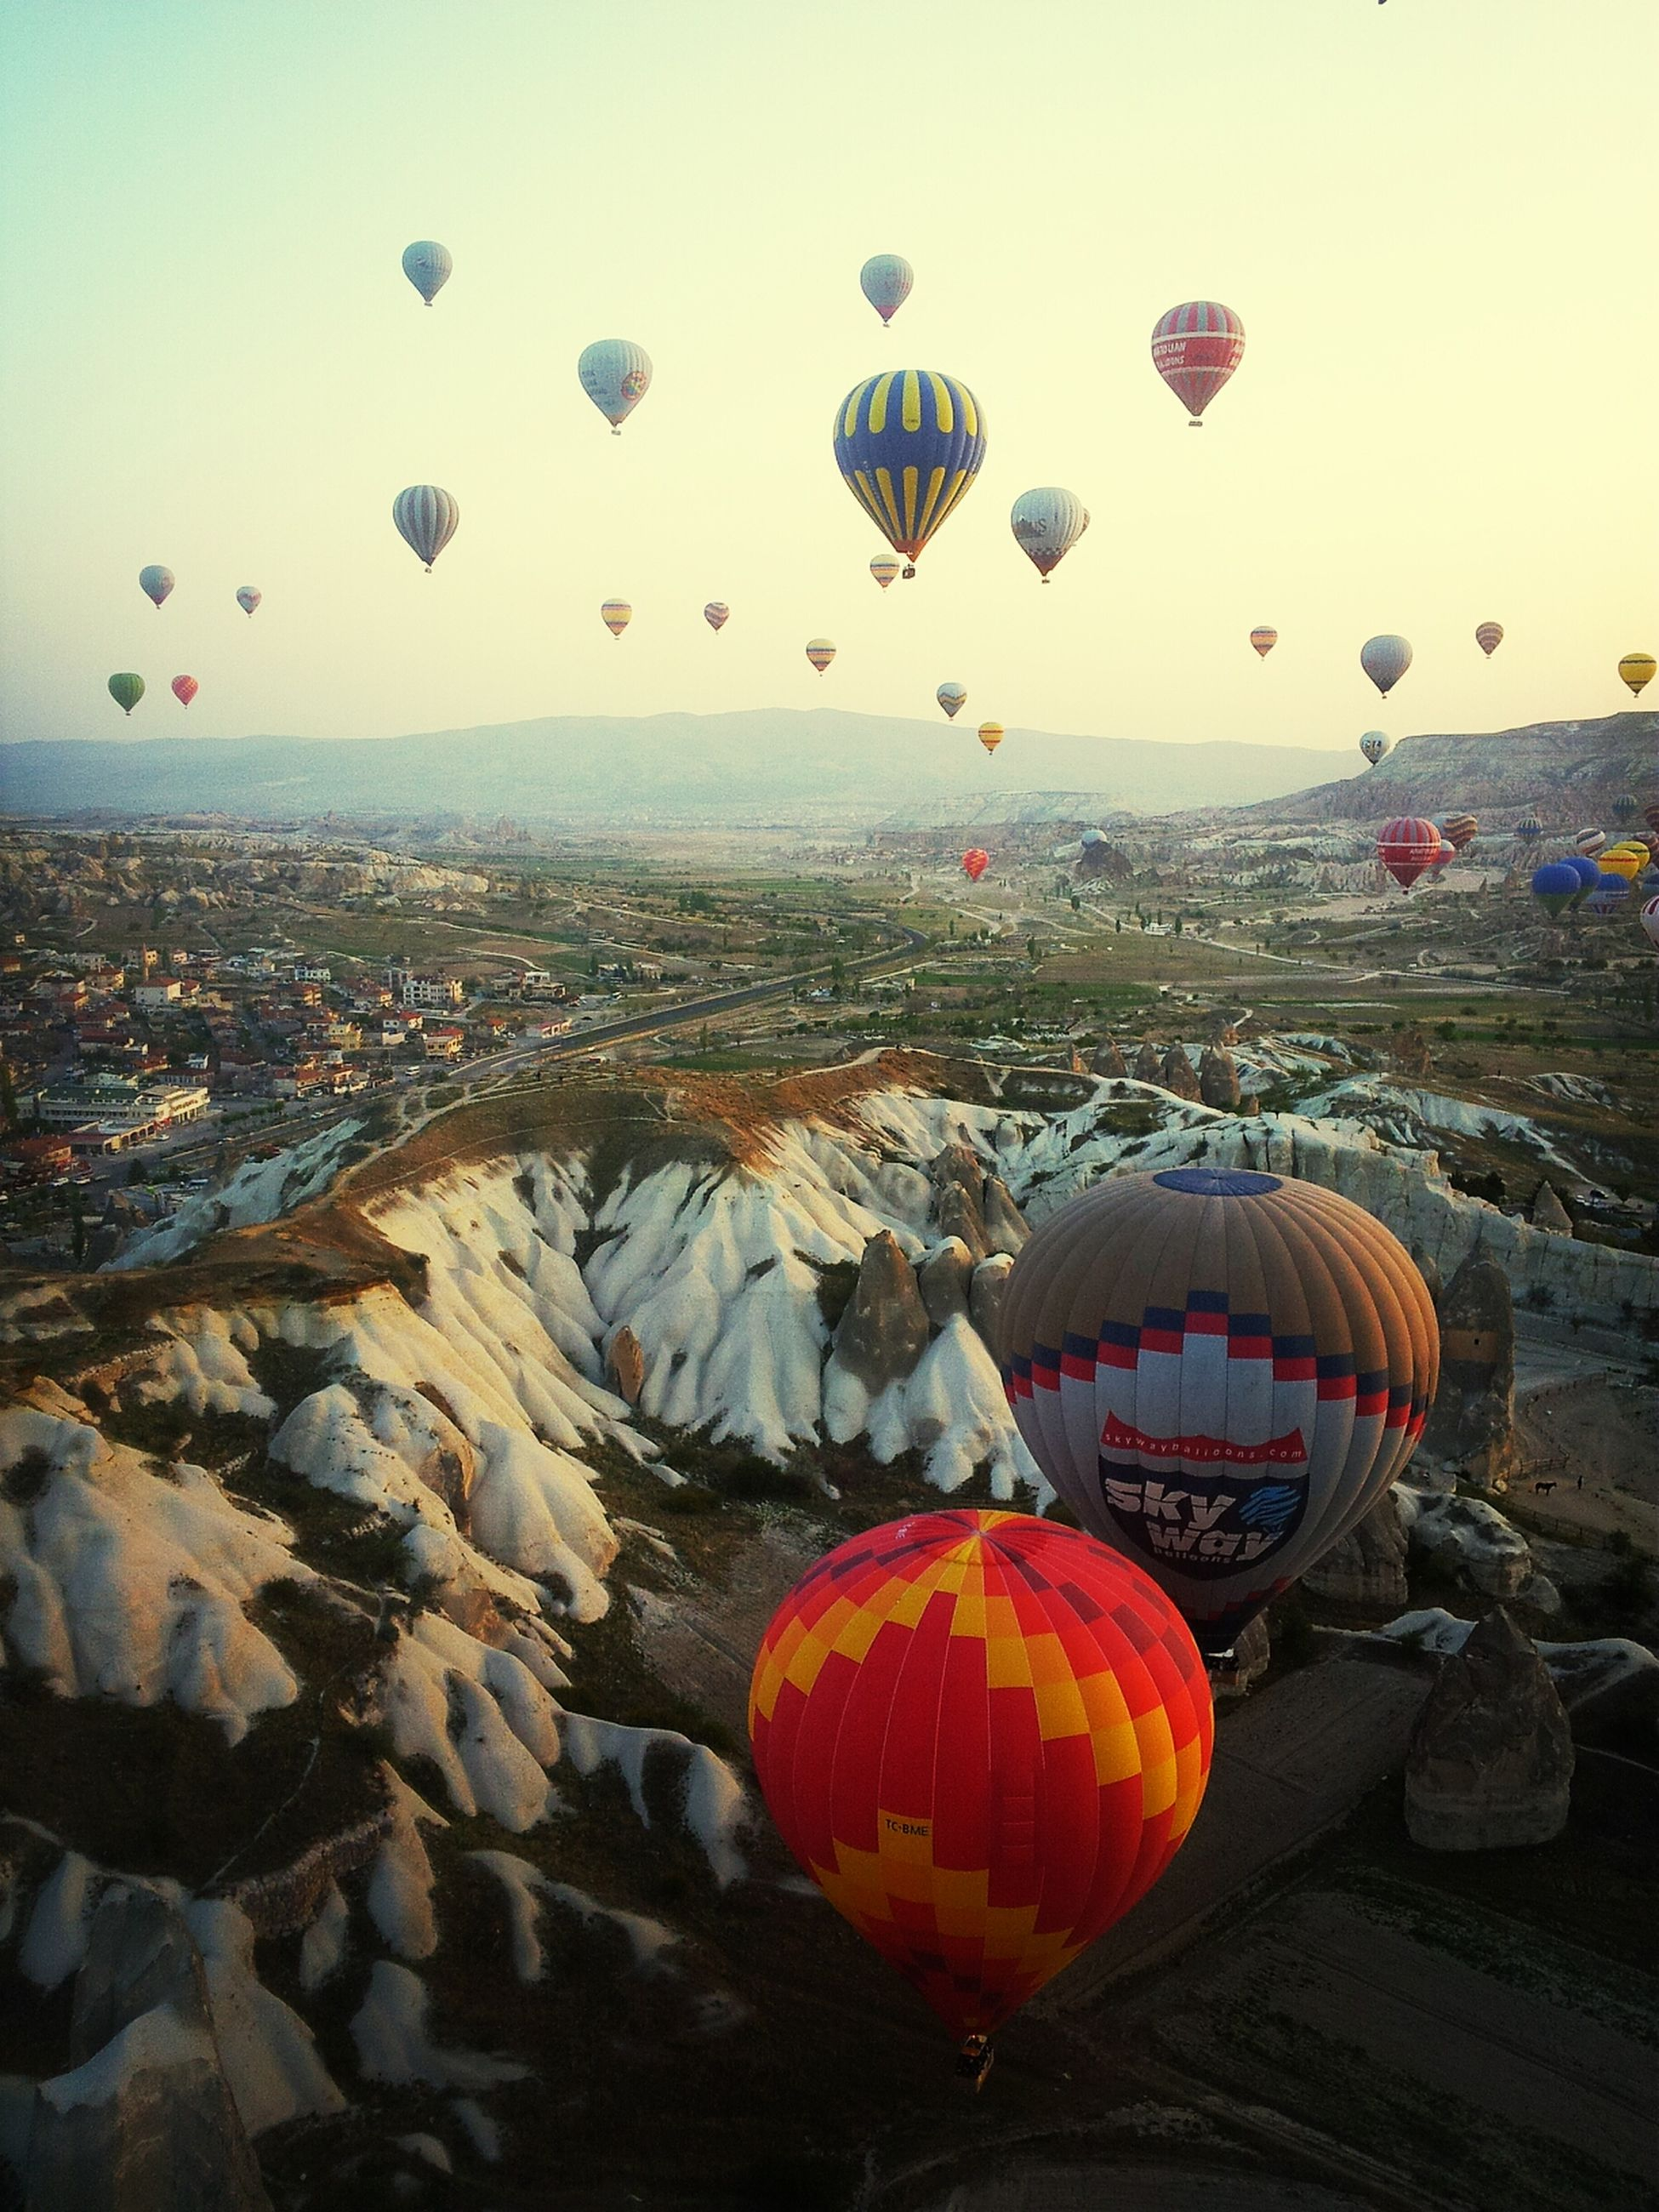 sky, hot air balloon, mid-air, multi colored, sunset, flying, transportation, outdoors, balloon, sea, celebration, scenics, no people, clear sky, nature, sun, tranquility, dusk, tradition, orange color